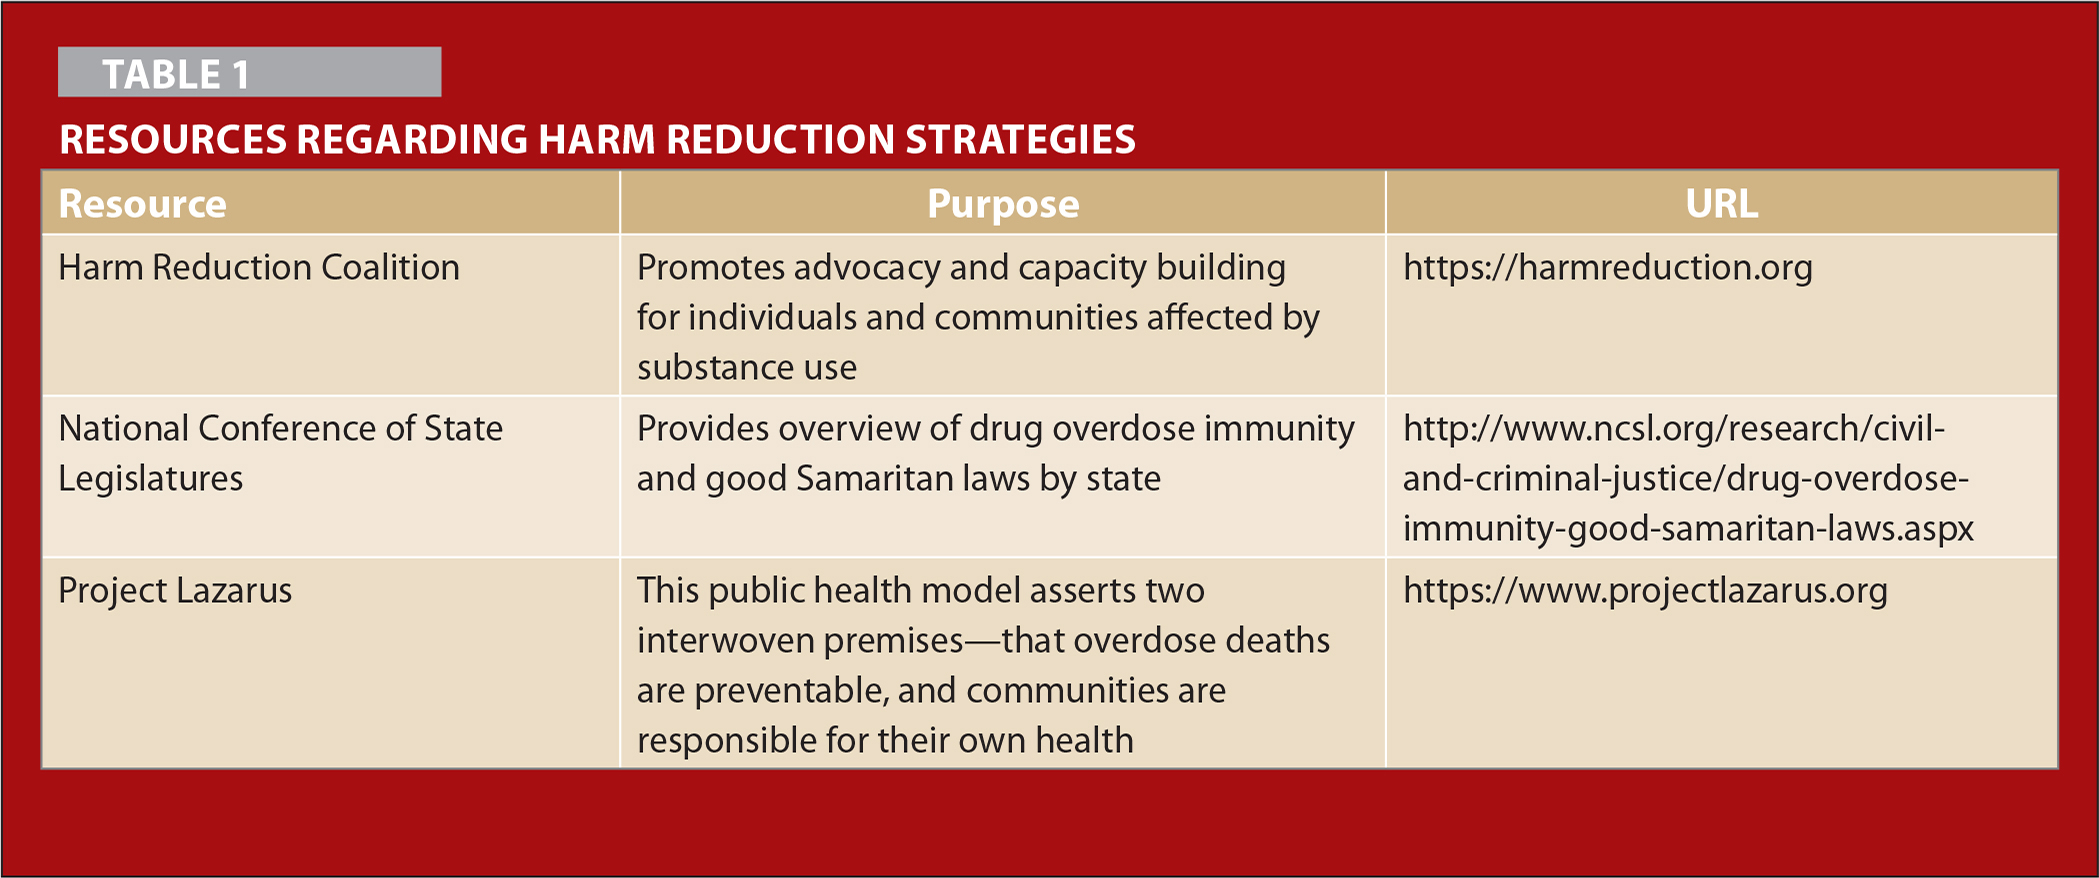 Resources Regarding Harm Reduction Strategies